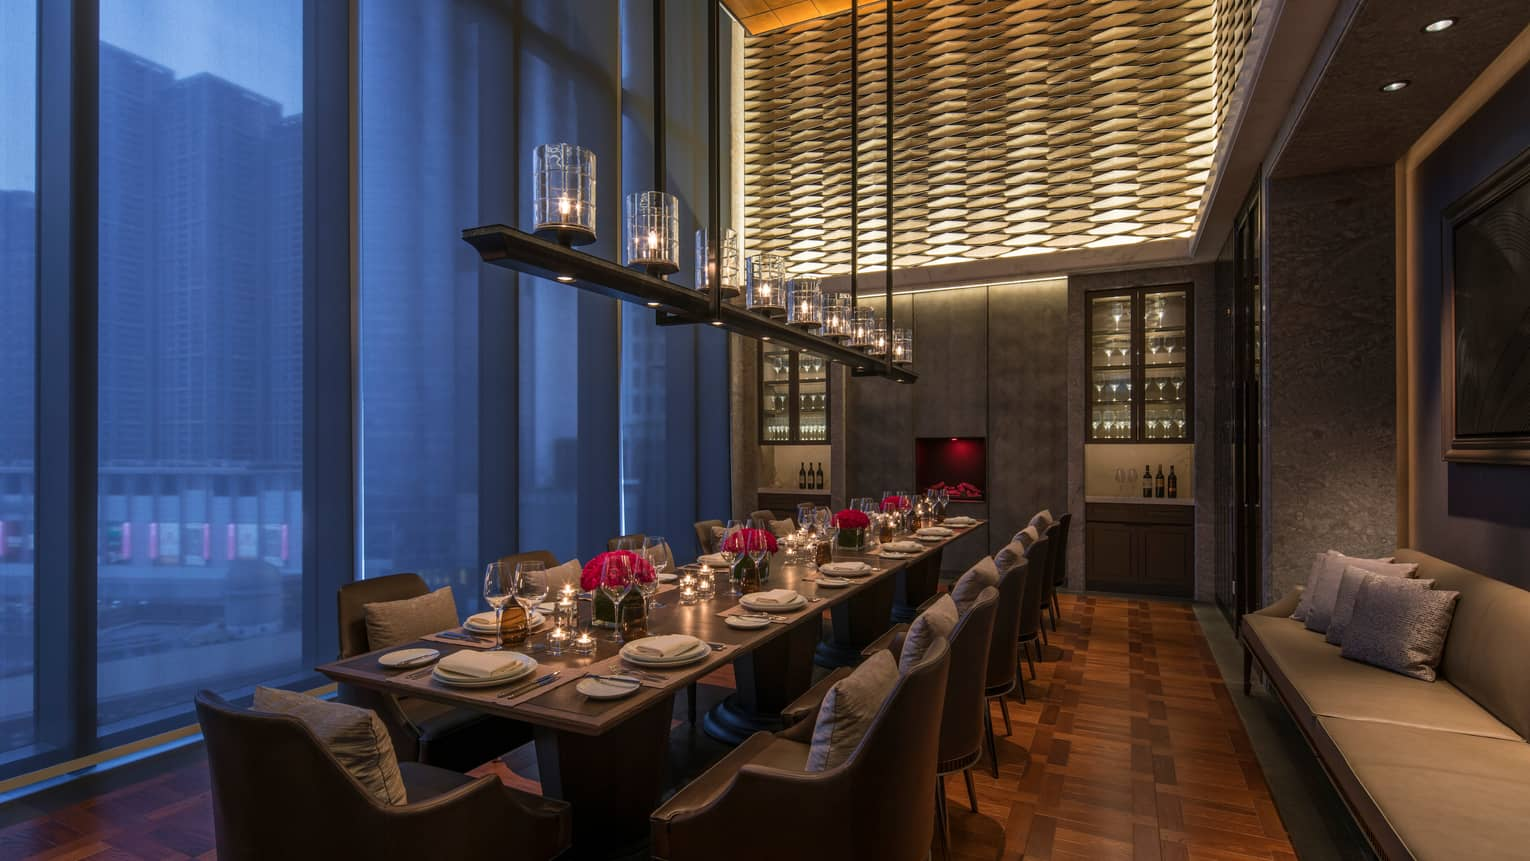 Long private dining table under row of glowing lanterns, tall windows at dusk